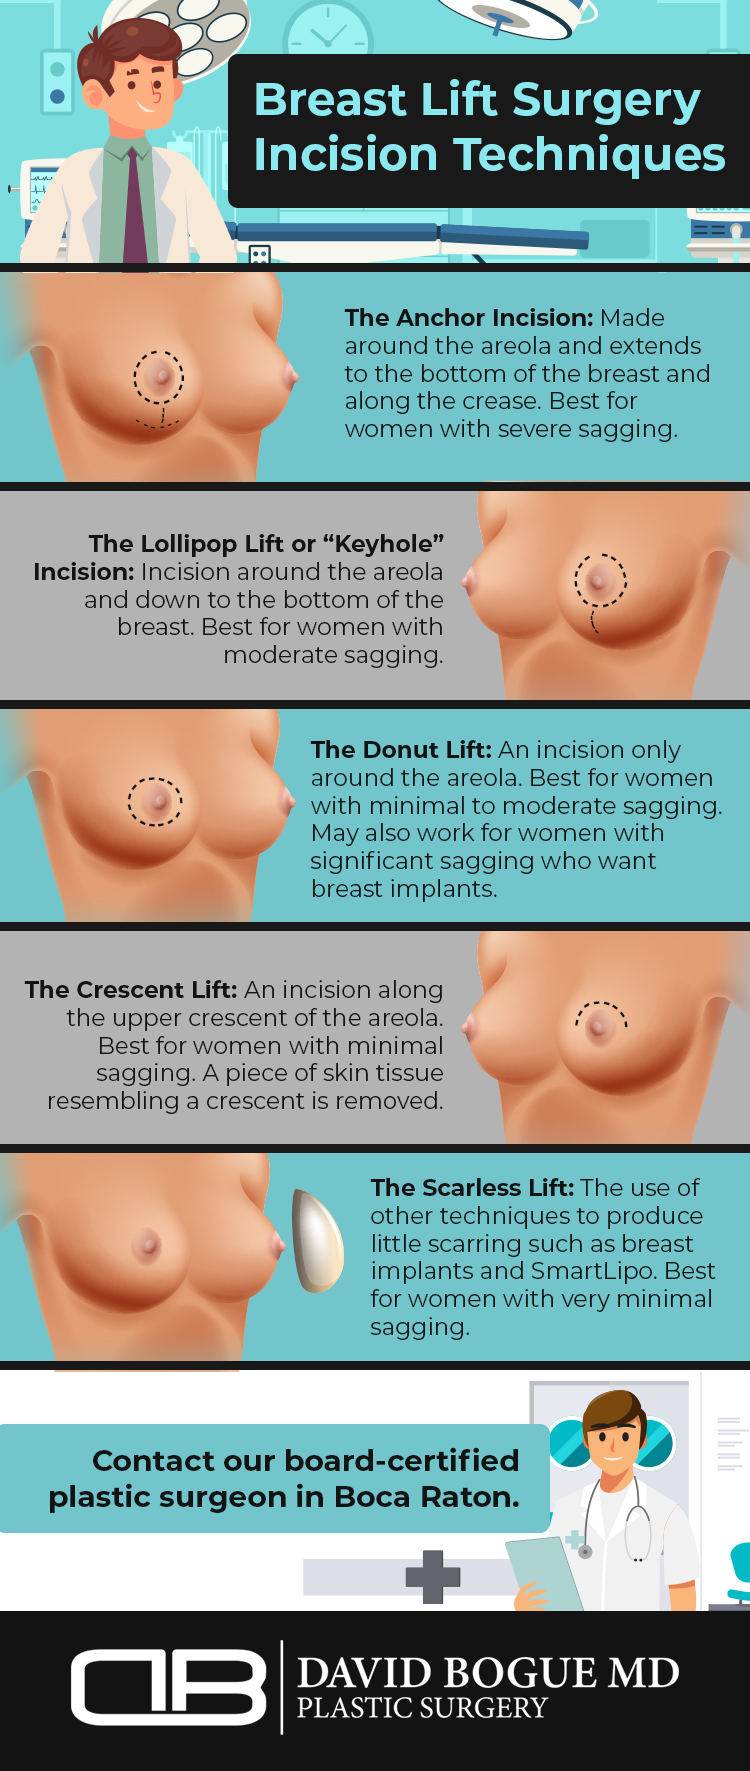 Infographic shows the breast lift incision techniques in Boca Raton